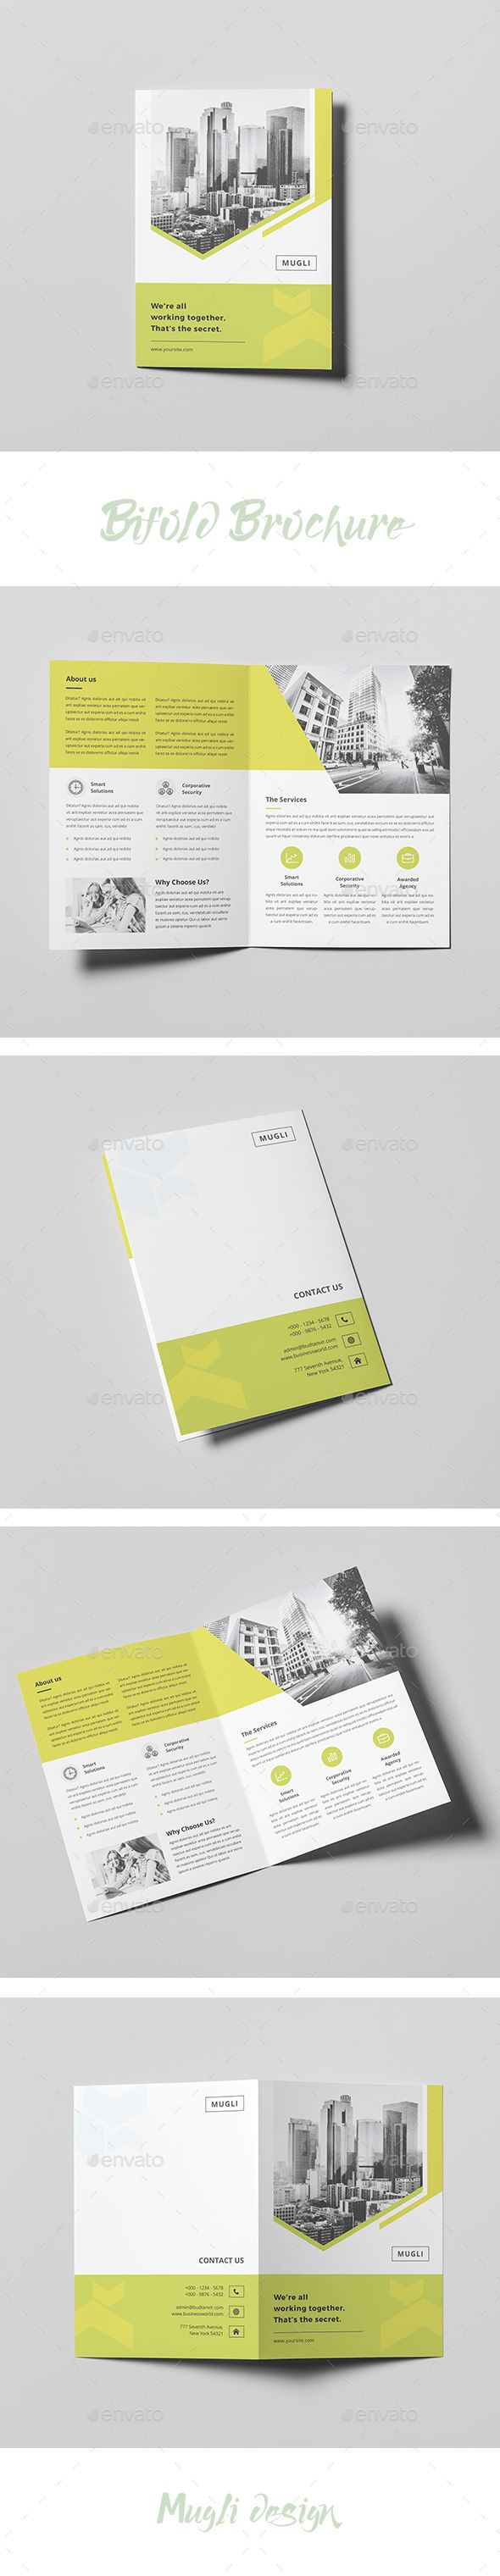 Bifold Brochure  Details      A4 210×297 mm (8.27×11.7 inches) + bleeds 0.125 inches     300 DPI     CMYK – print ready     Easy to modify, change colors  Fonts and images:      open-sans     Montserrat     The images are not included.  If you like this item please rate it! Thank you.